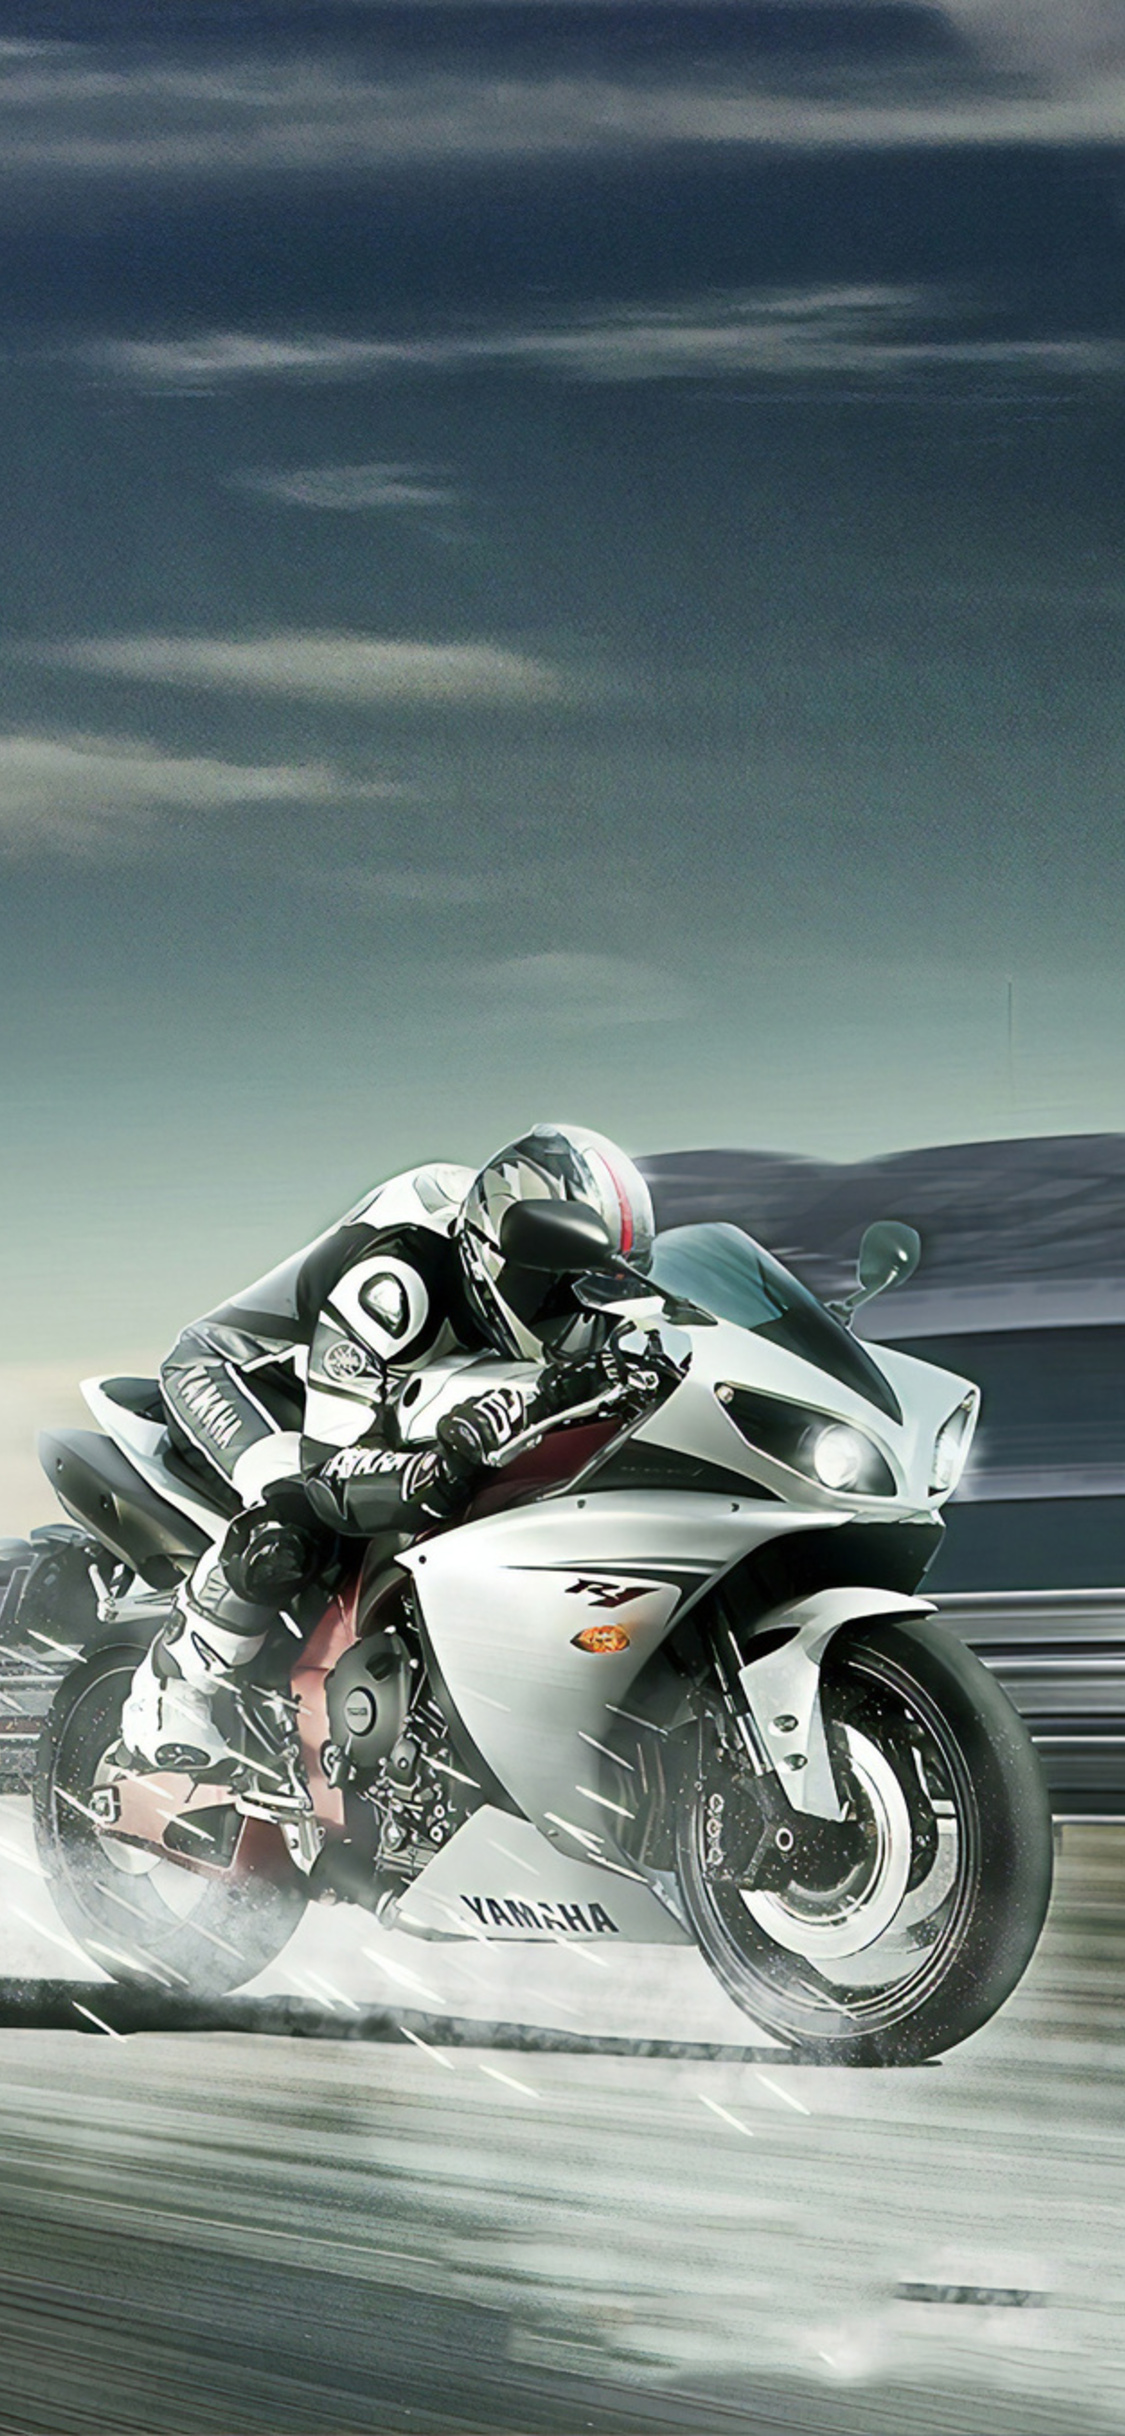 yamaha-r1-run-qw.jpg